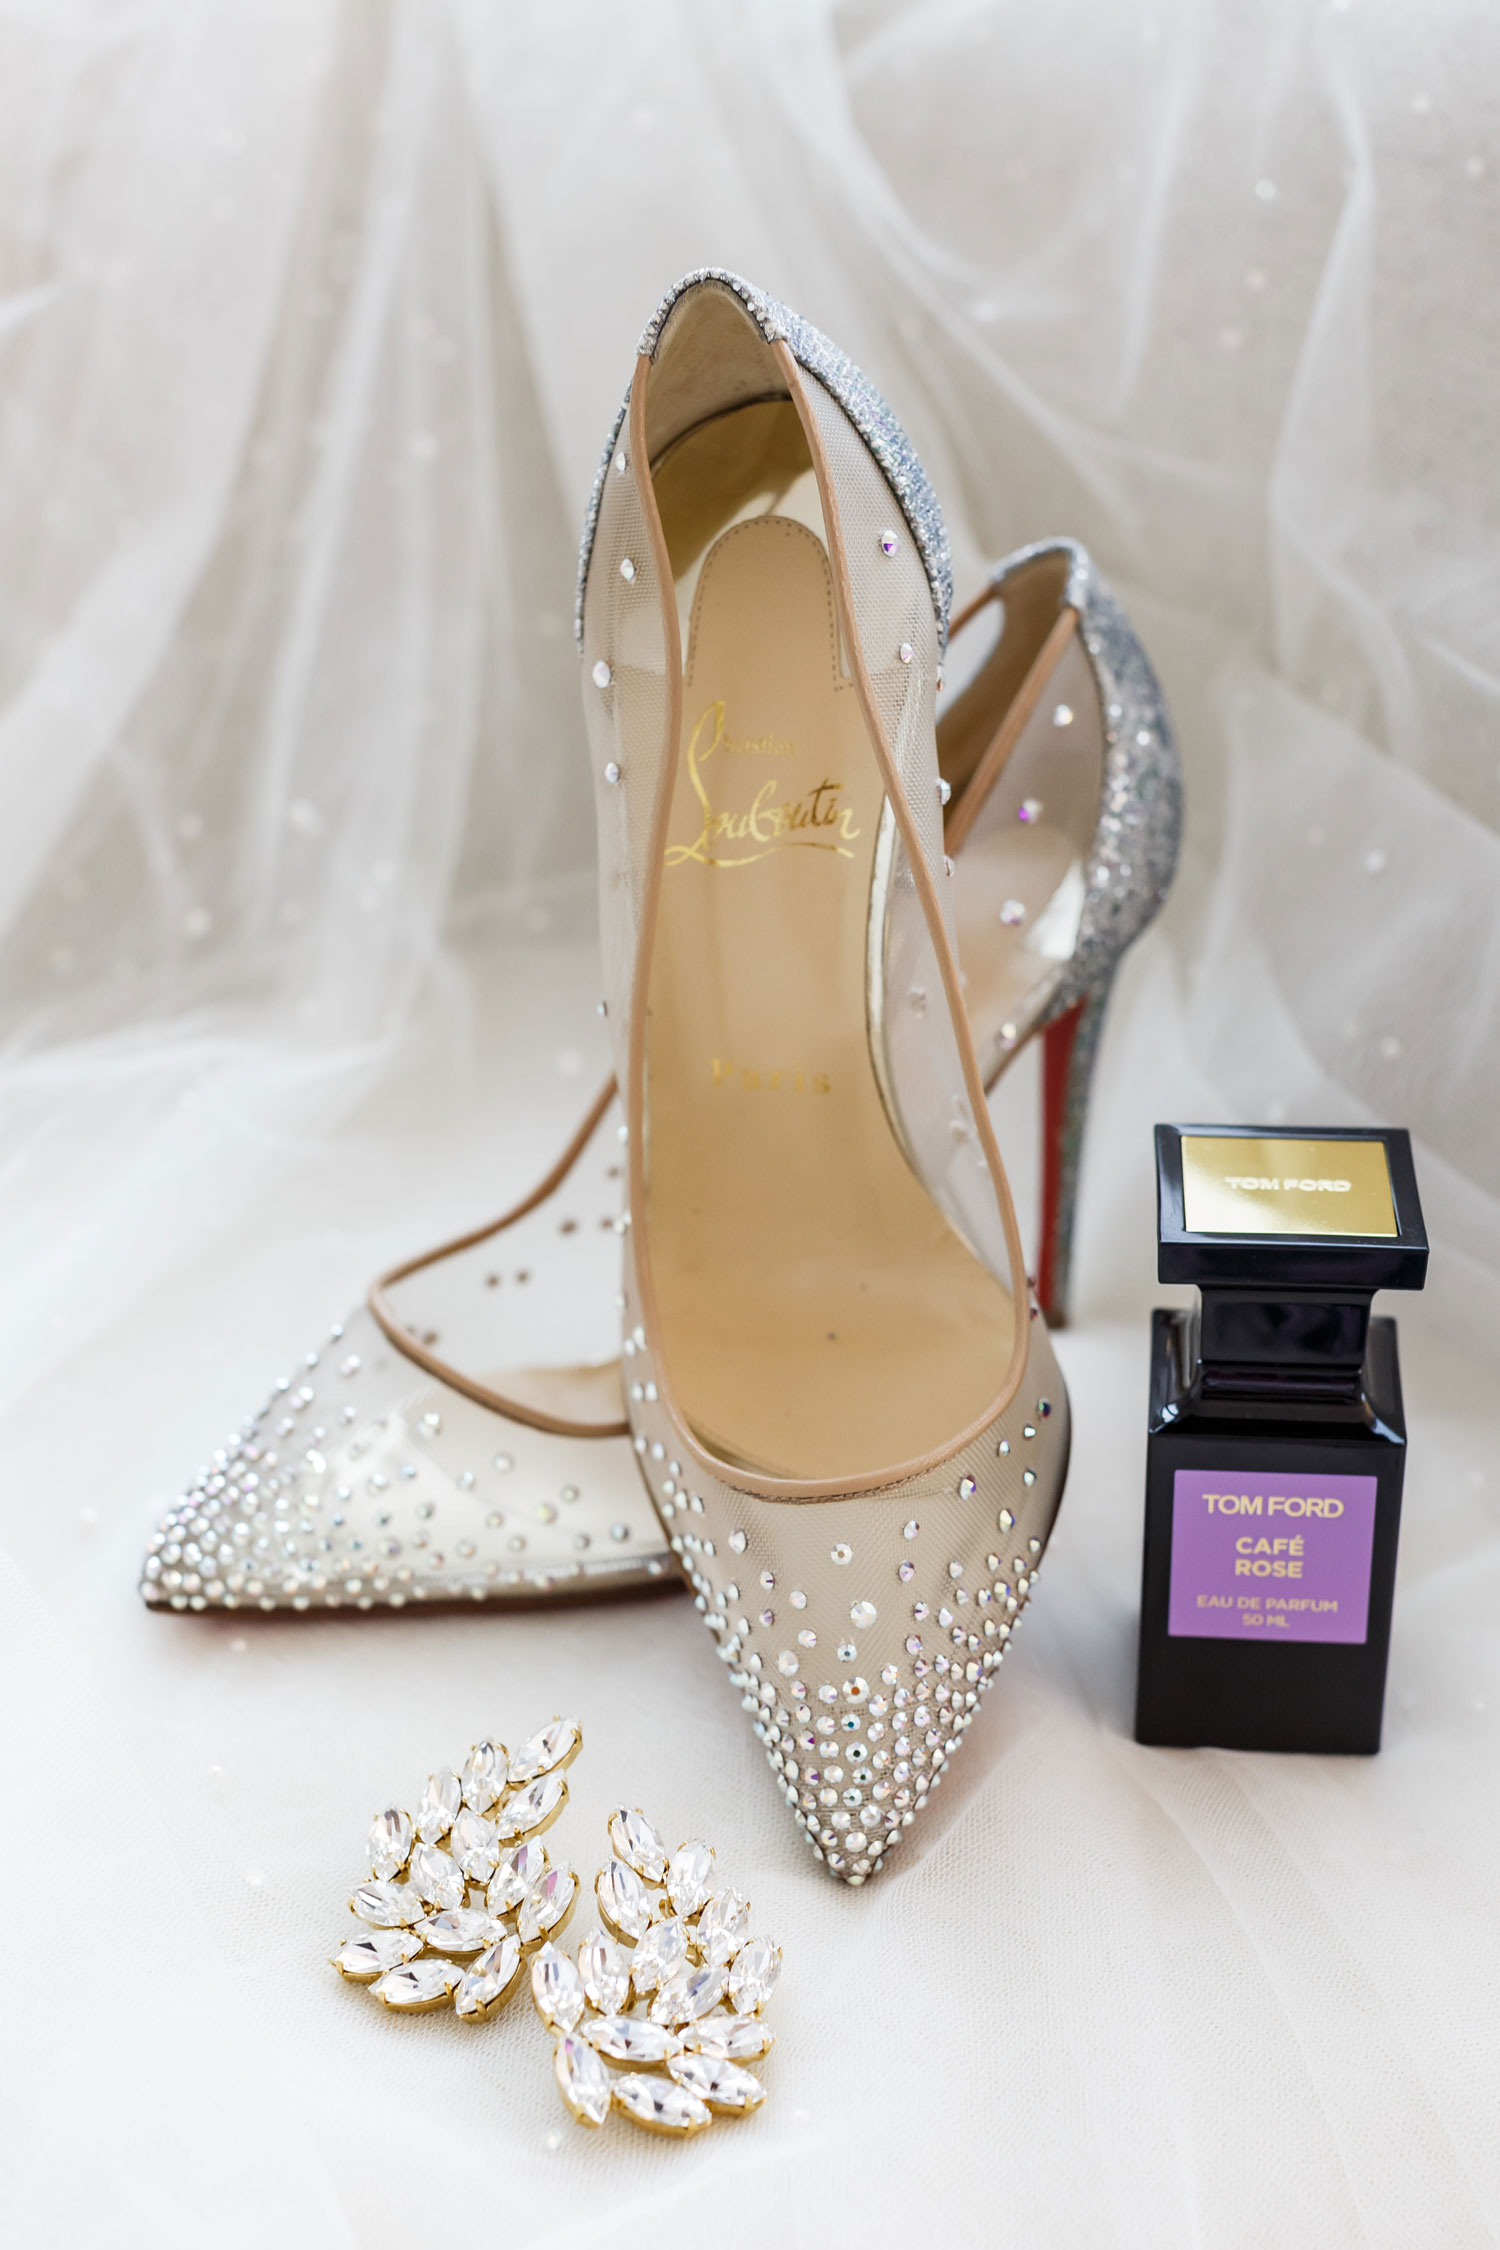 Christian Louboutin sheer sparkly wedding shoes wedding detail shot photography